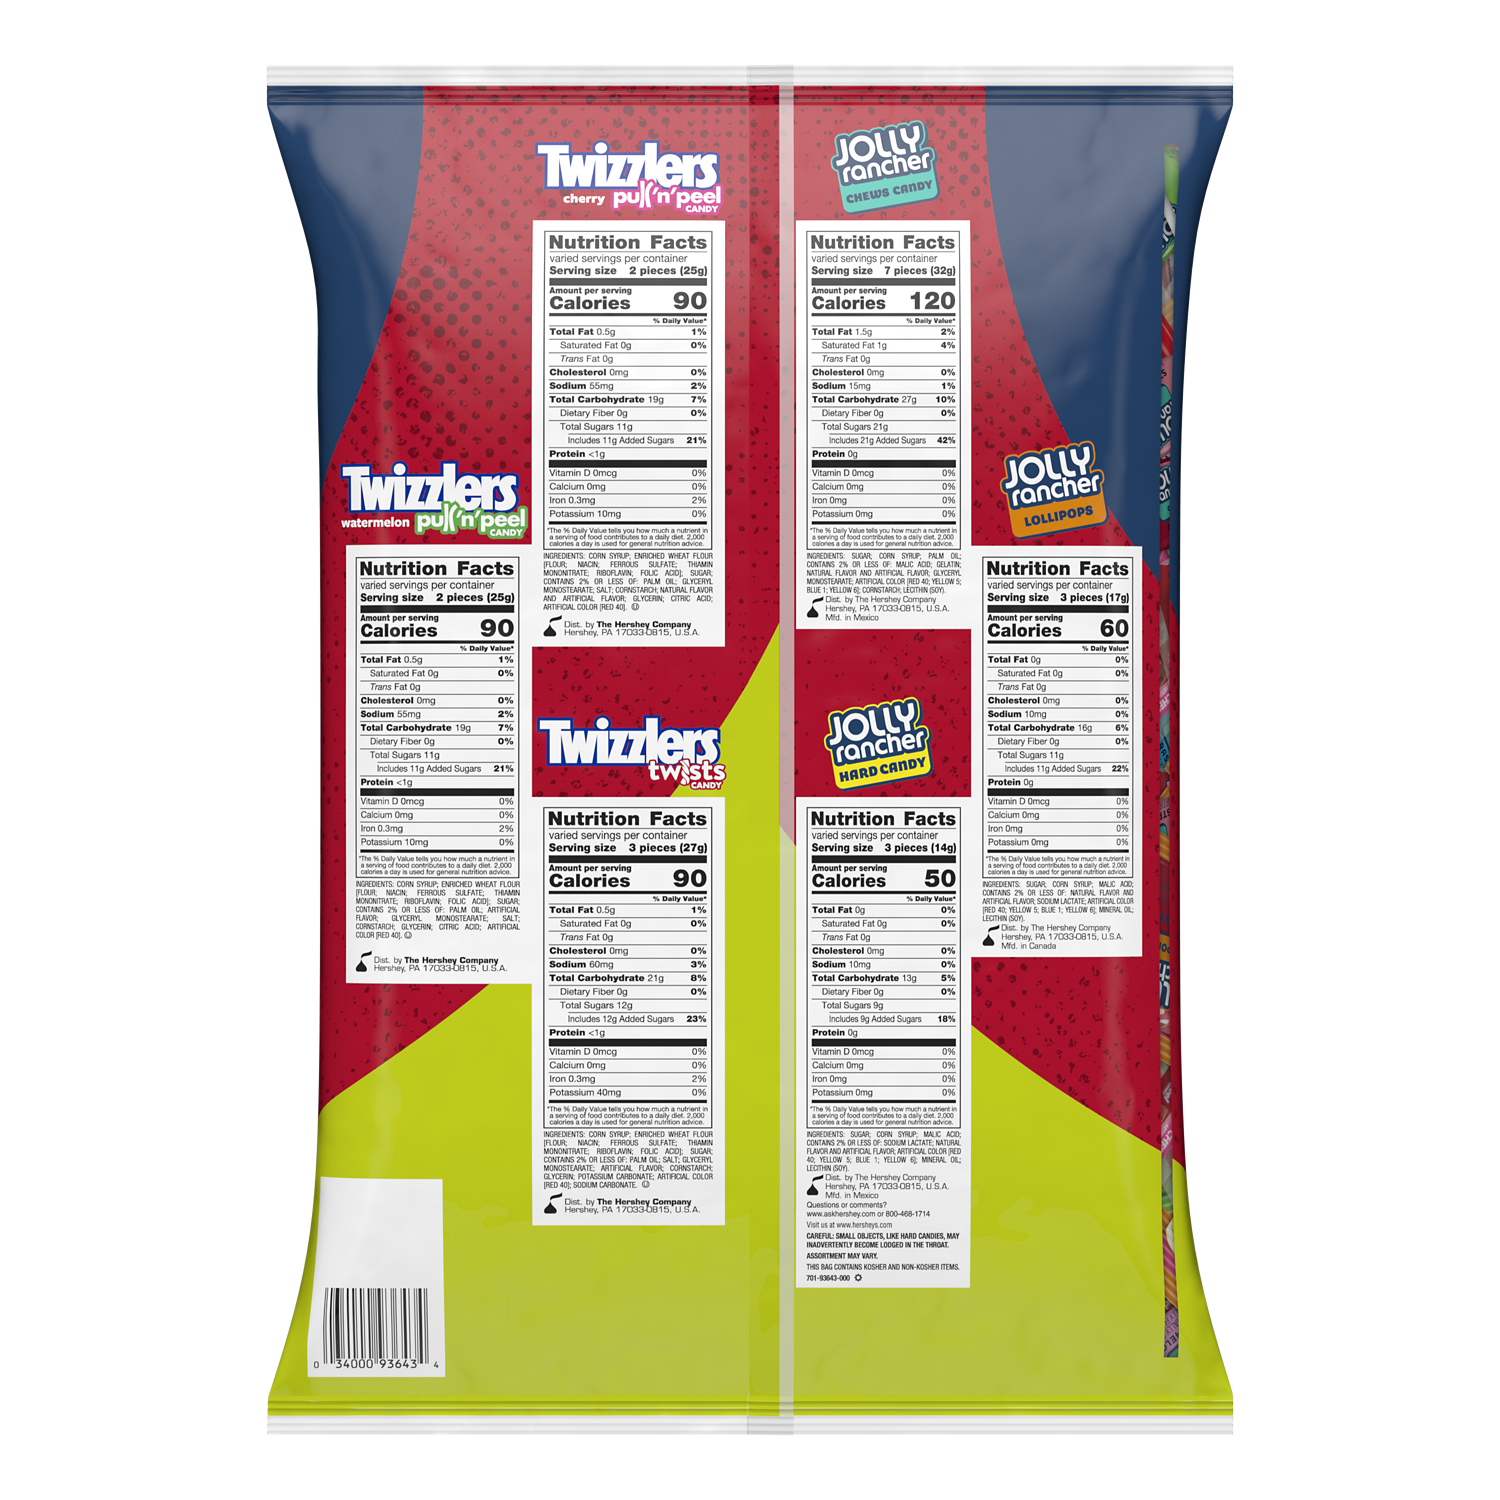 JOLLY RANCHER & TWIZZLERS Assortment, 66.88 oz bag, 235 pieces - Back of Package